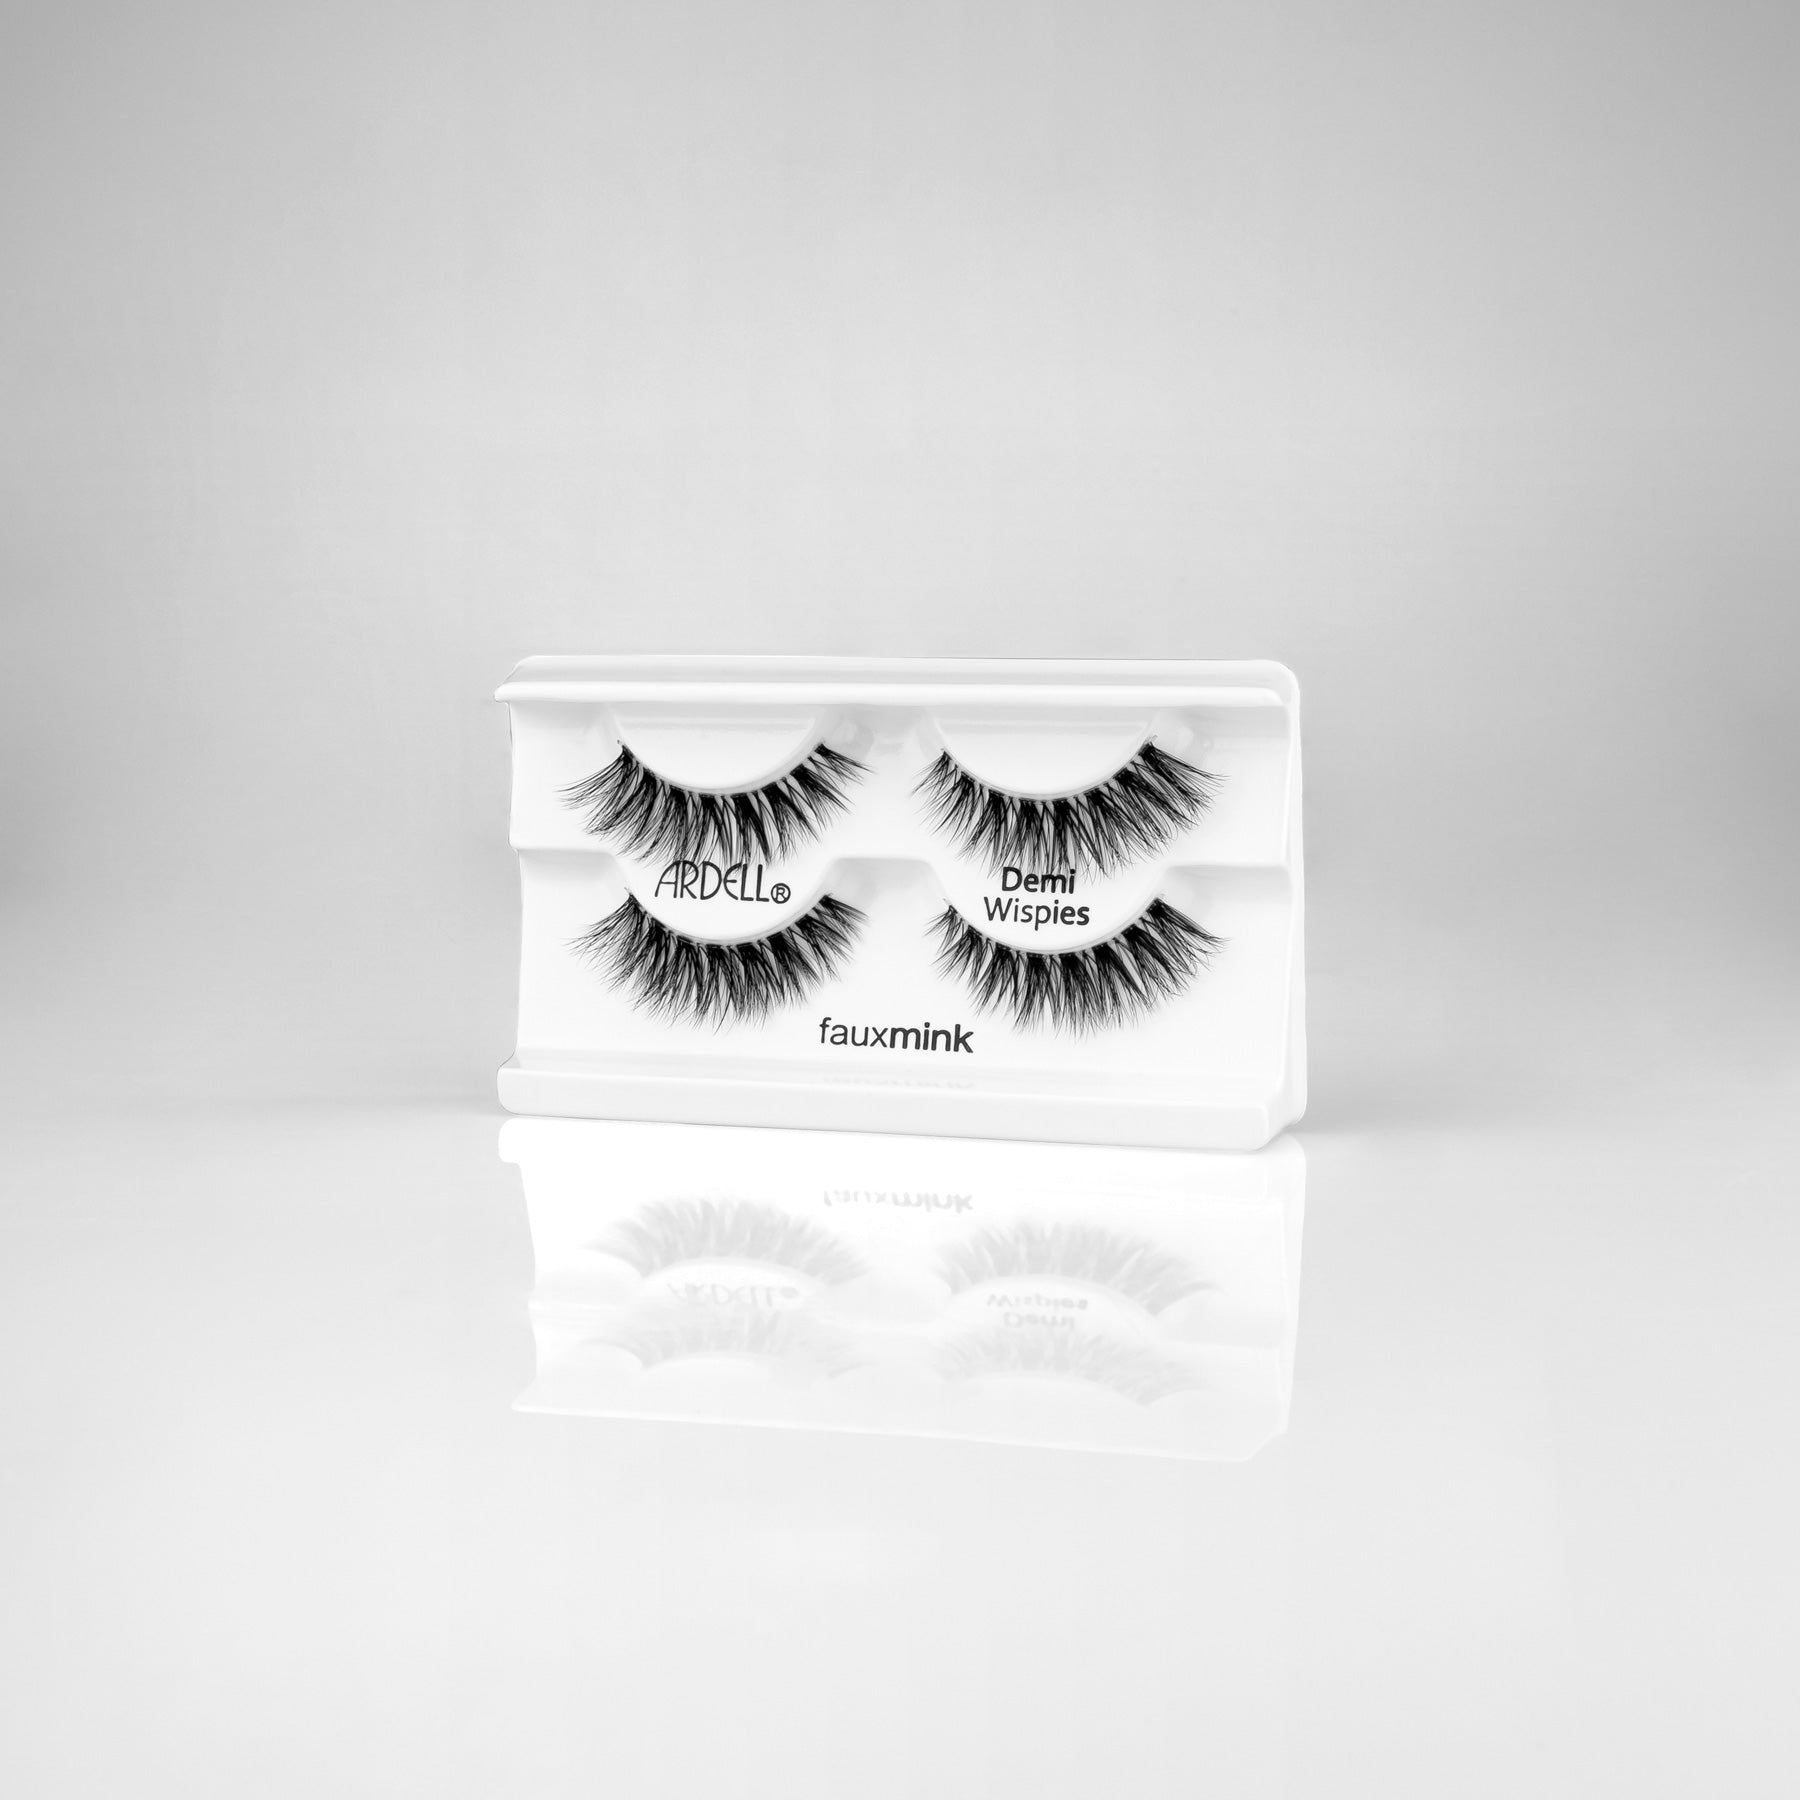 shop-bacodi ARDELL FAUX MINK DEMI WISPIES TWIN PACK